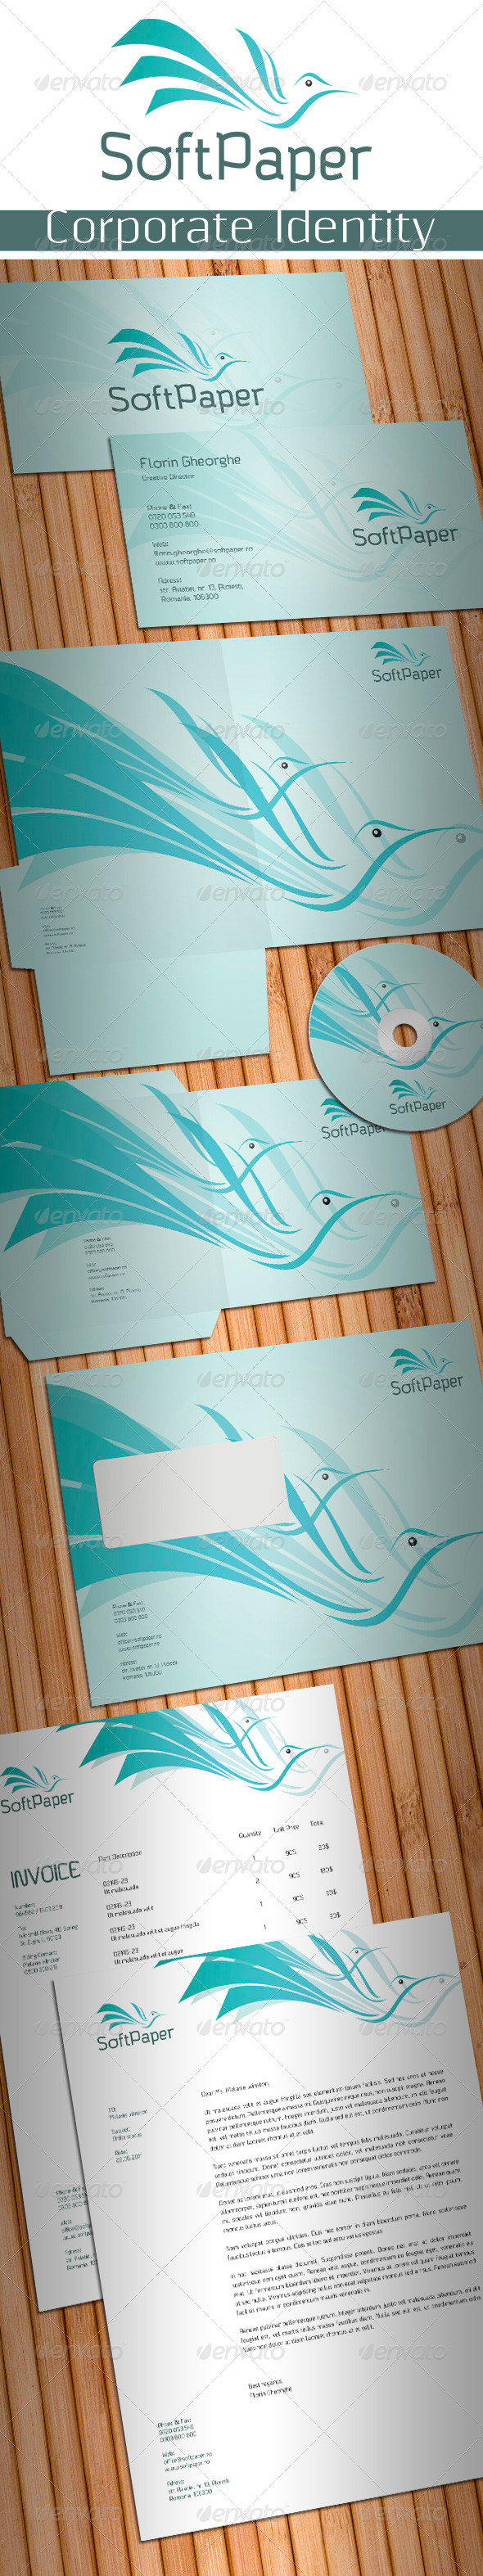 Soft Paper Stationery - Stationery Print Templates